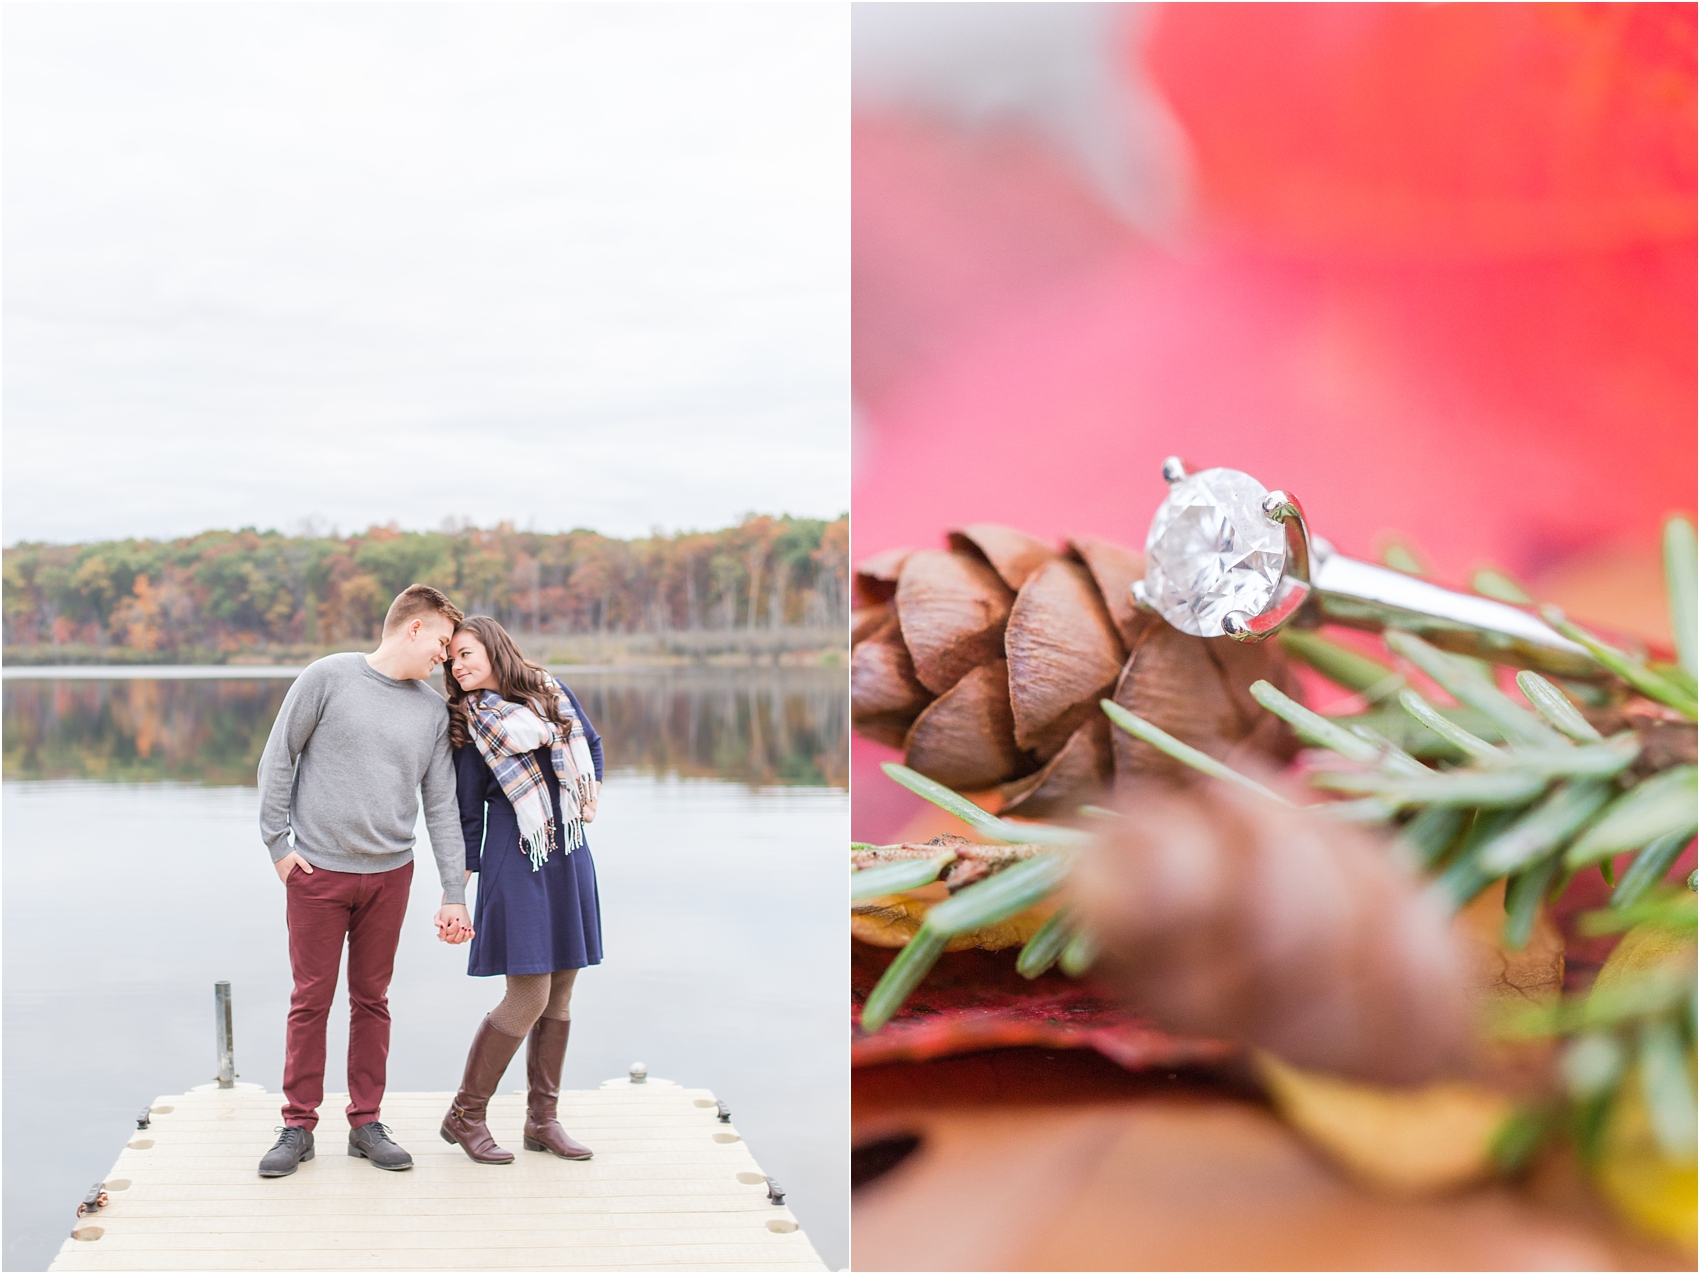 colorful-fall-engagement-photos-at-the-lake-at-huron-meadows-metropark-in-brighton-michigan-by-courtney-carolyn-photography_0008.jpg